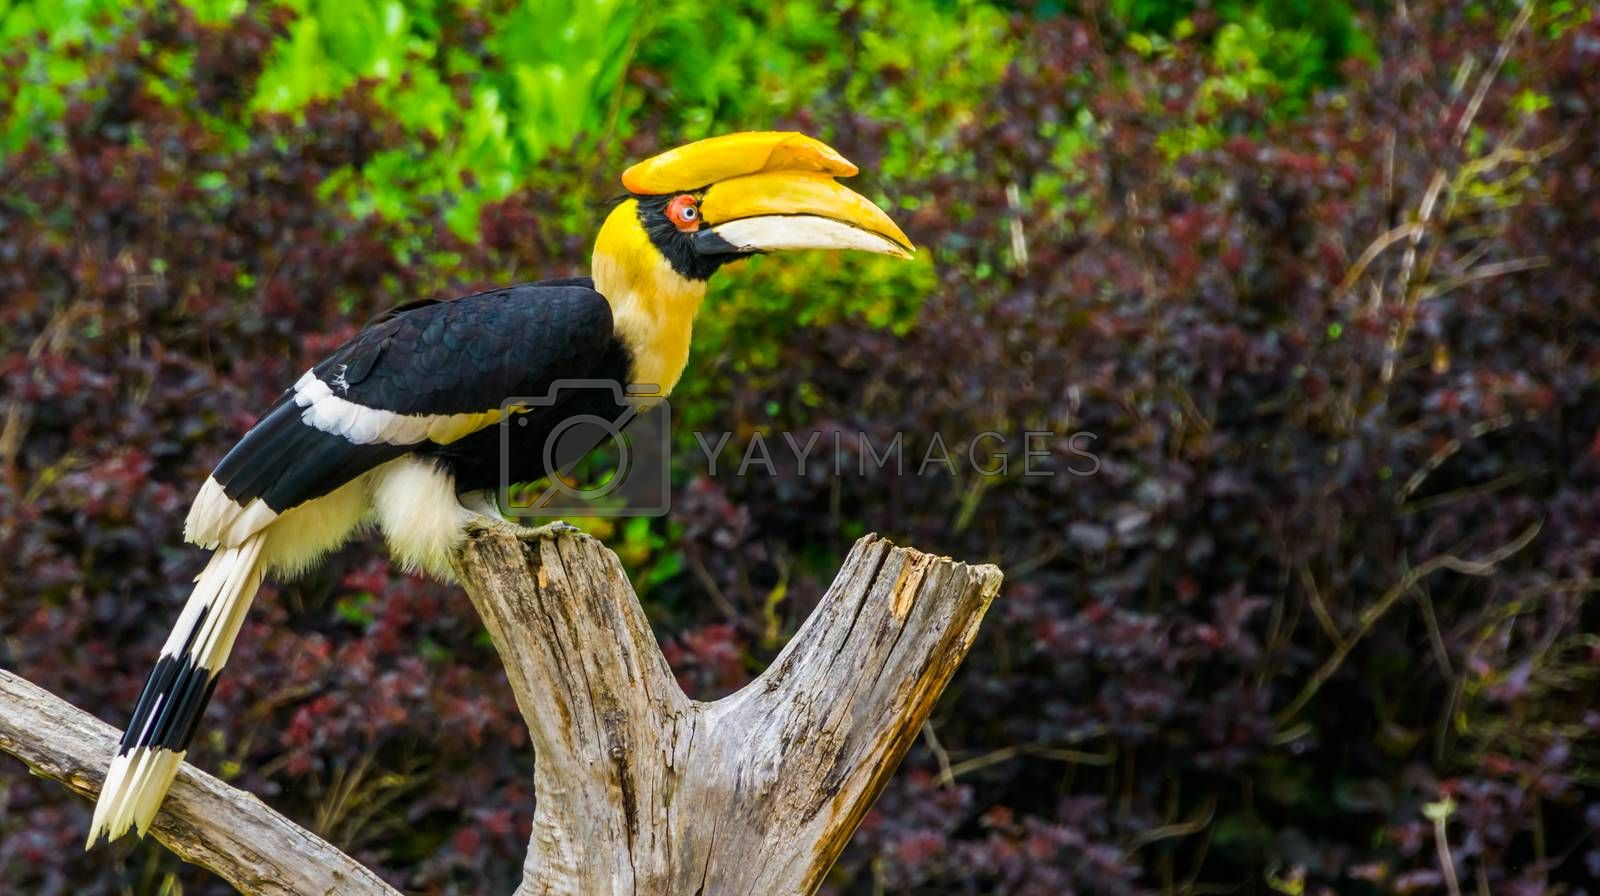 closeup portrait of a beautiful great indian hornbill, colorful tropical bird, Vulnerable animal specie from Asia